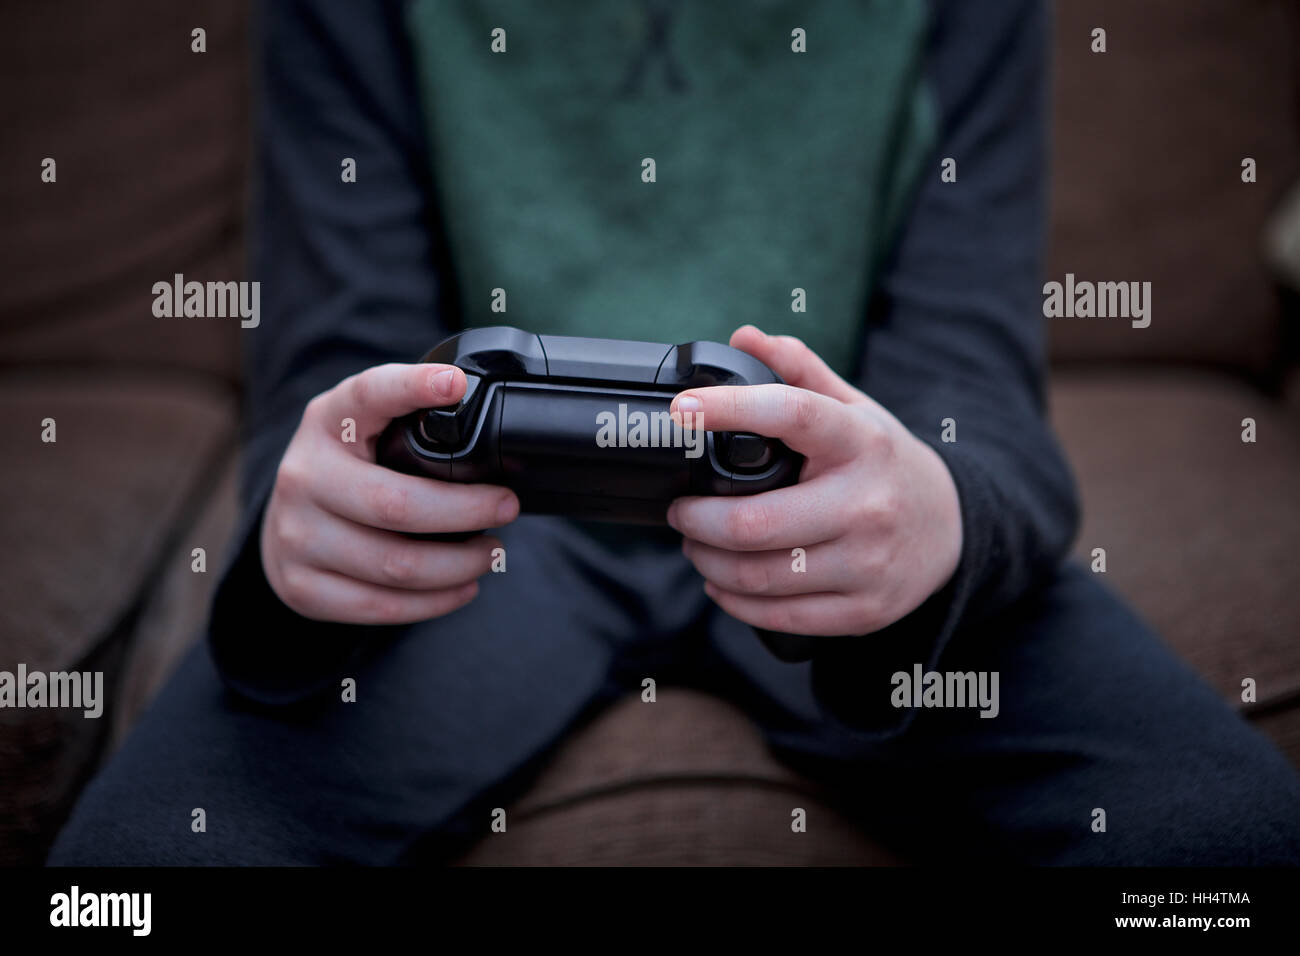 Close-up of a young boy holding video game controller. - Stock Image